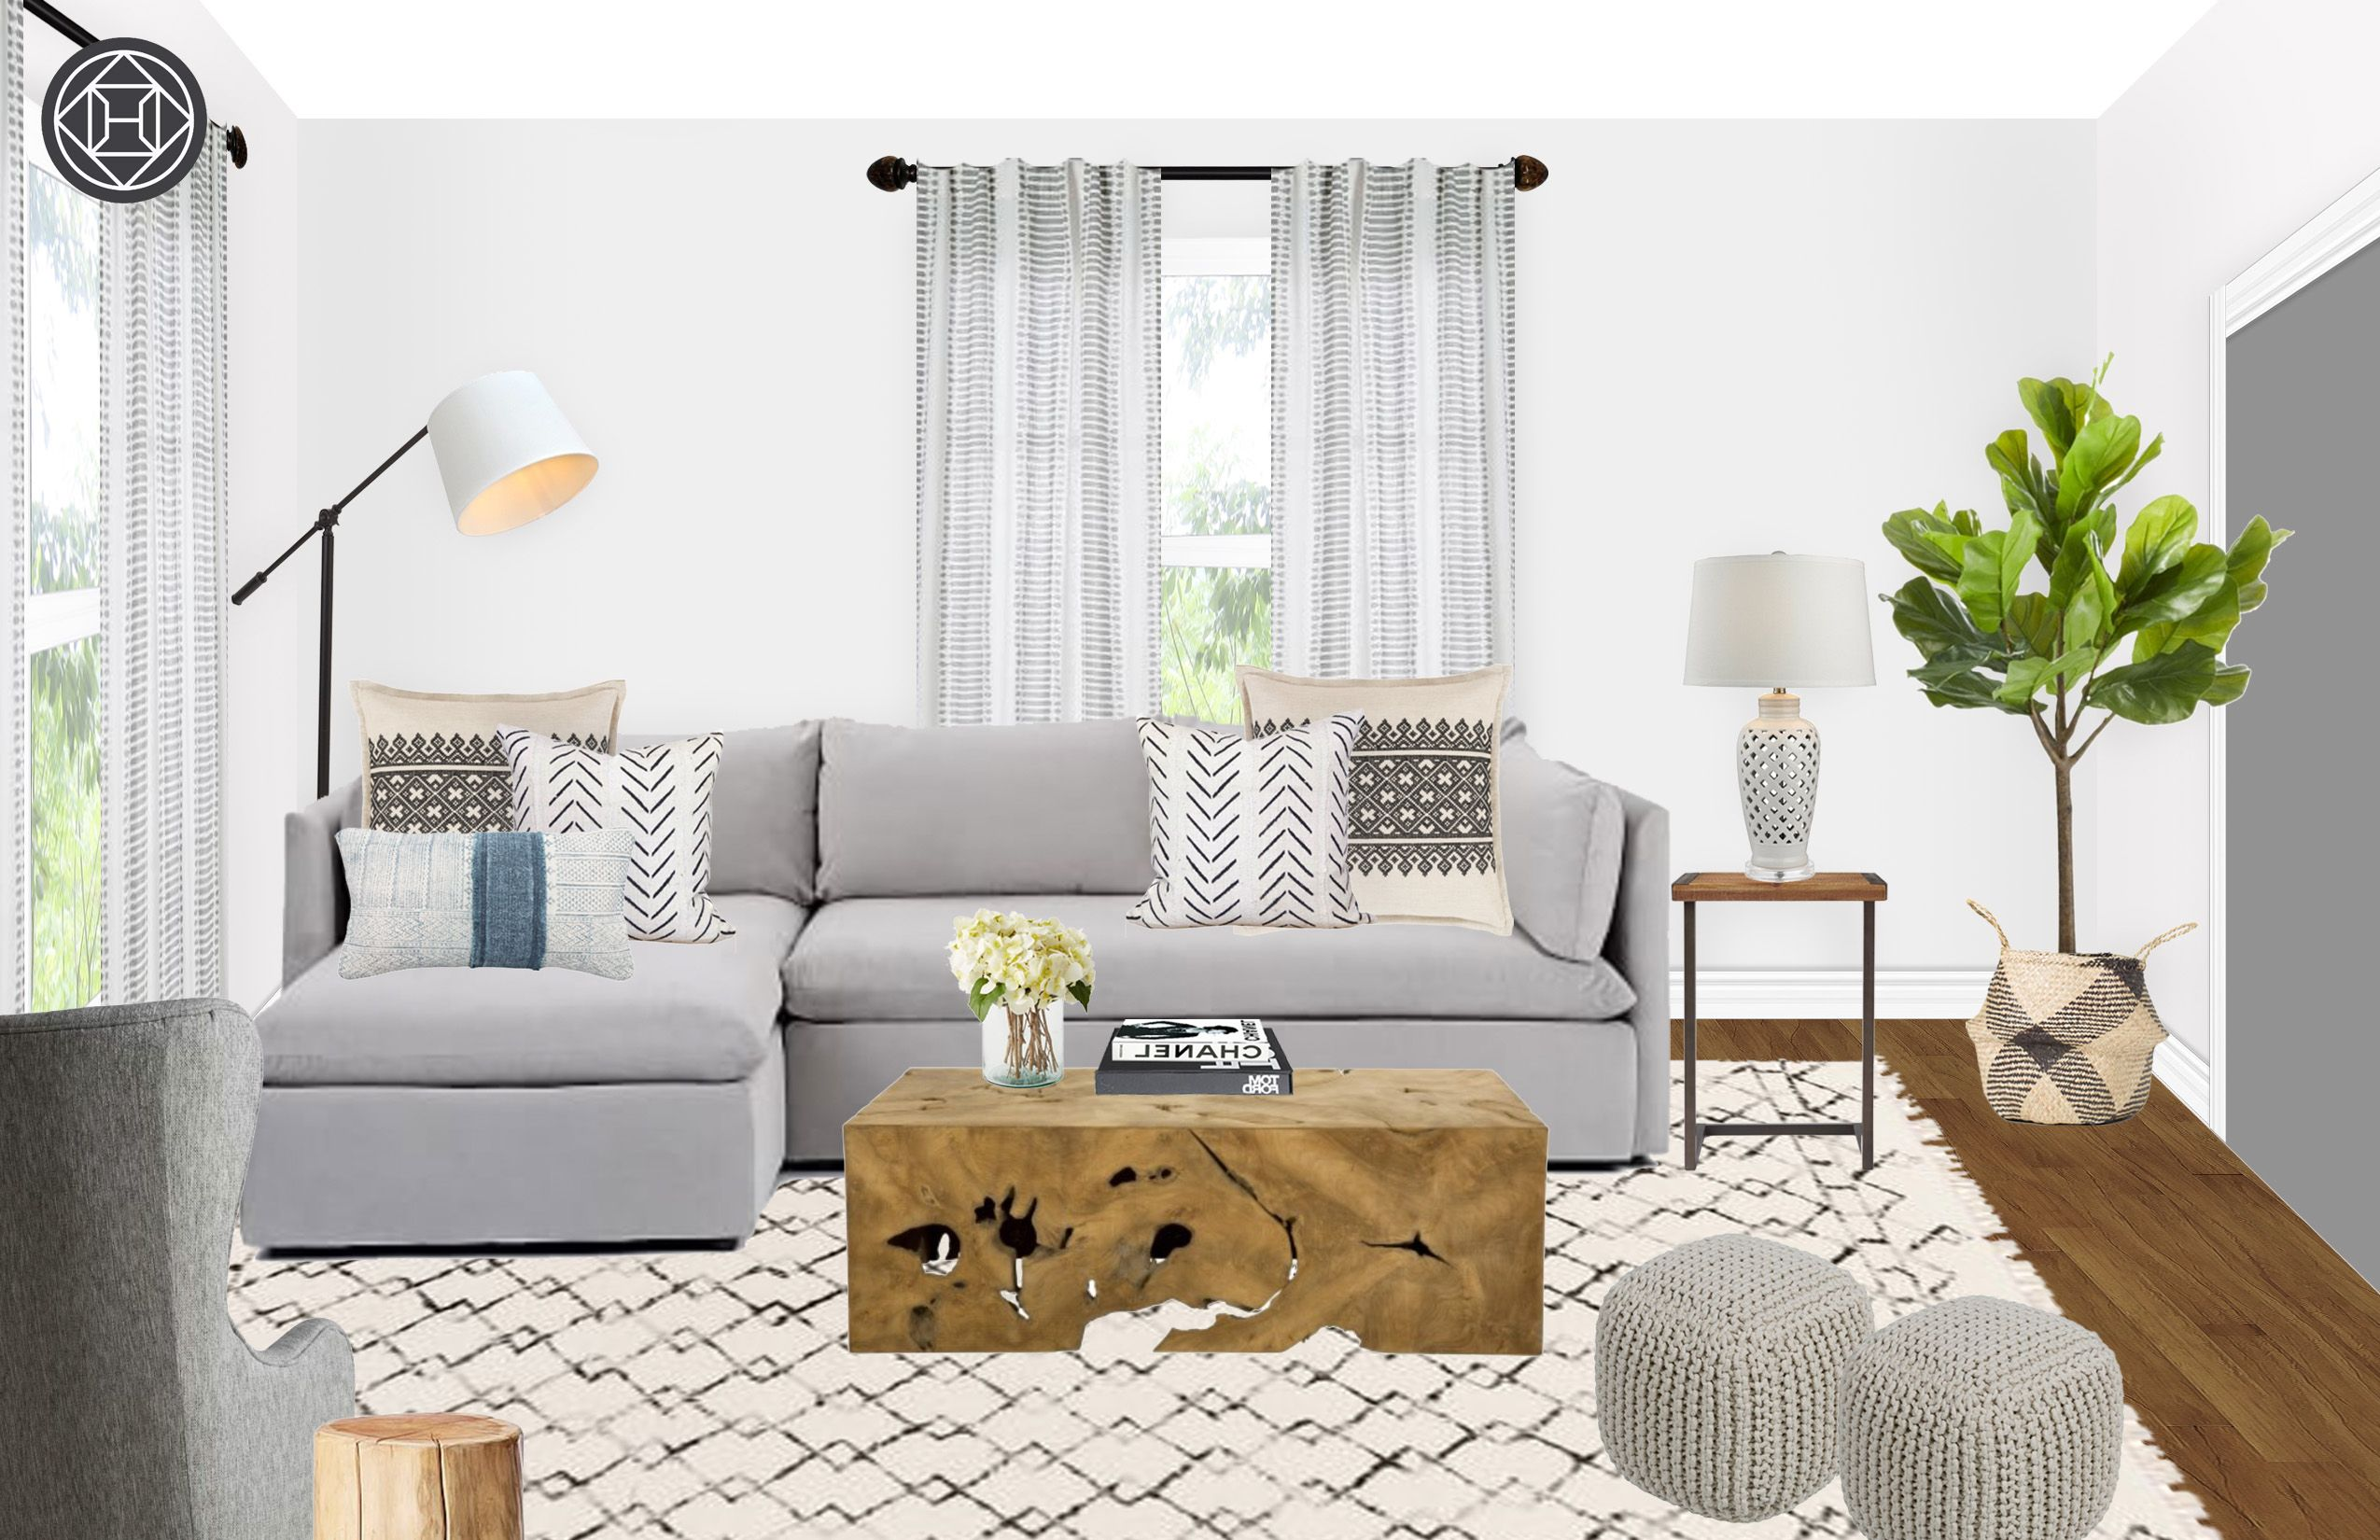 Farmhouse, Rustic, Global Living Room Design by Havenly ...